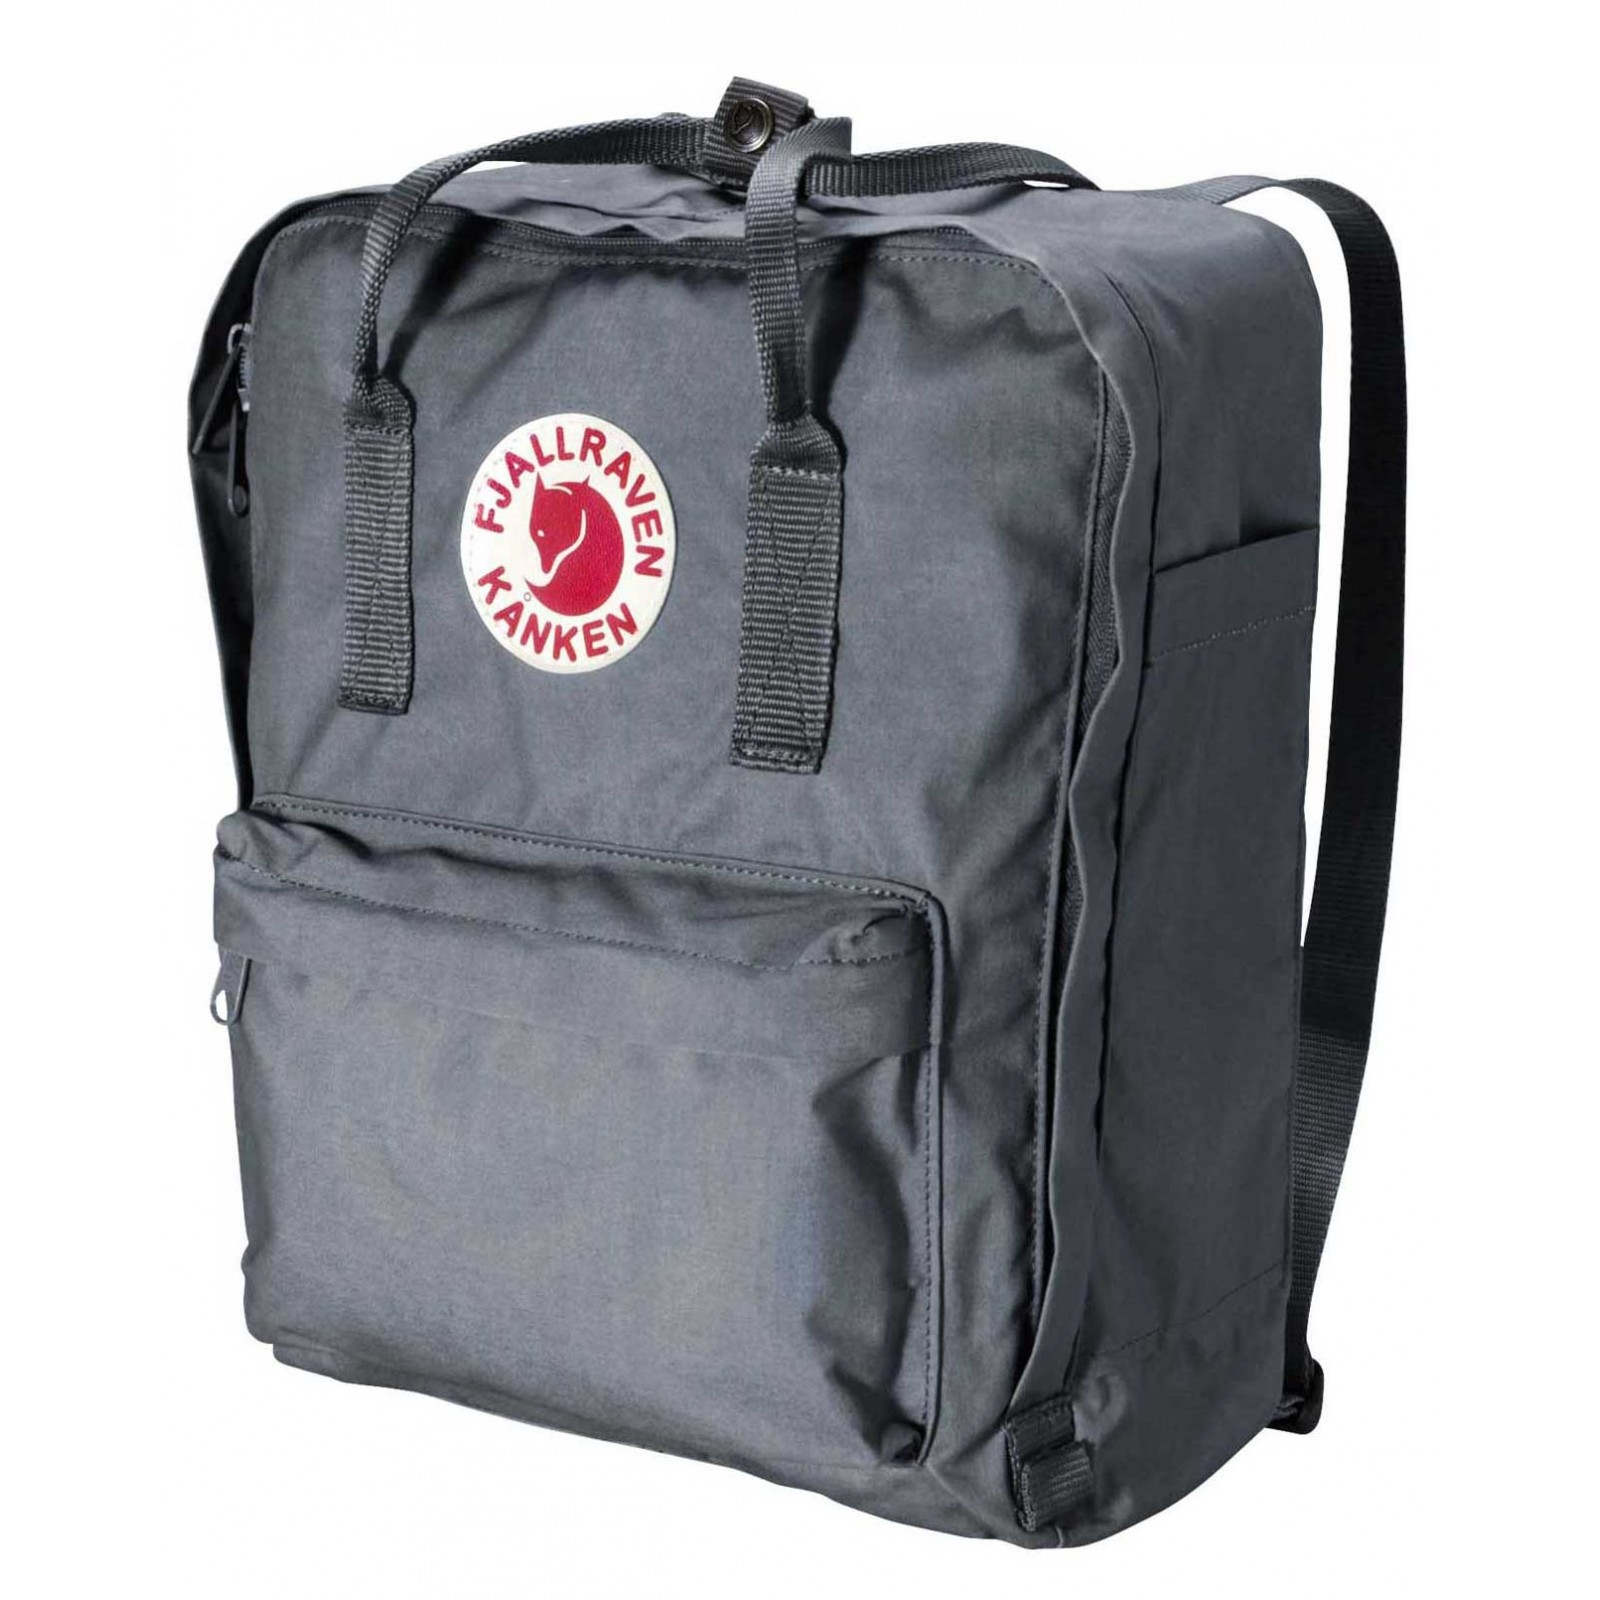 kanken fjallraven uk